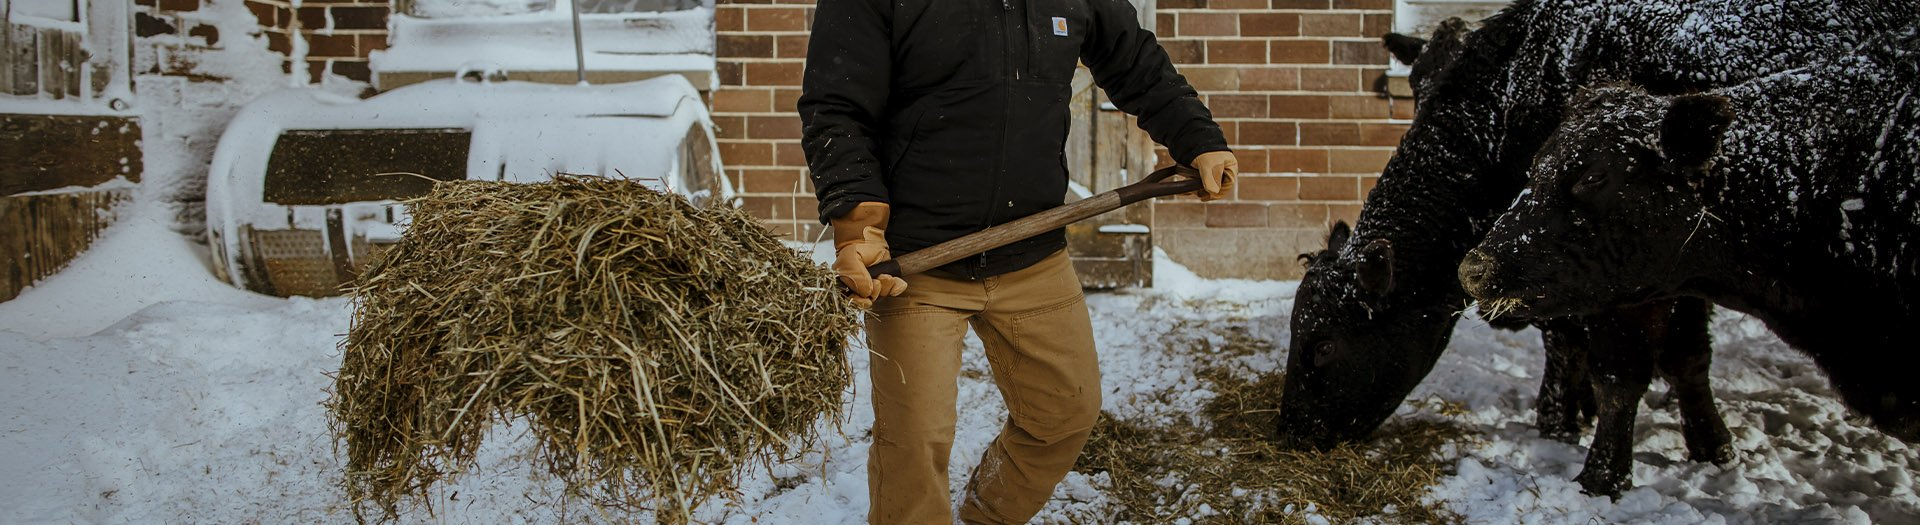 Man working on farm Carhartt hats and clothes